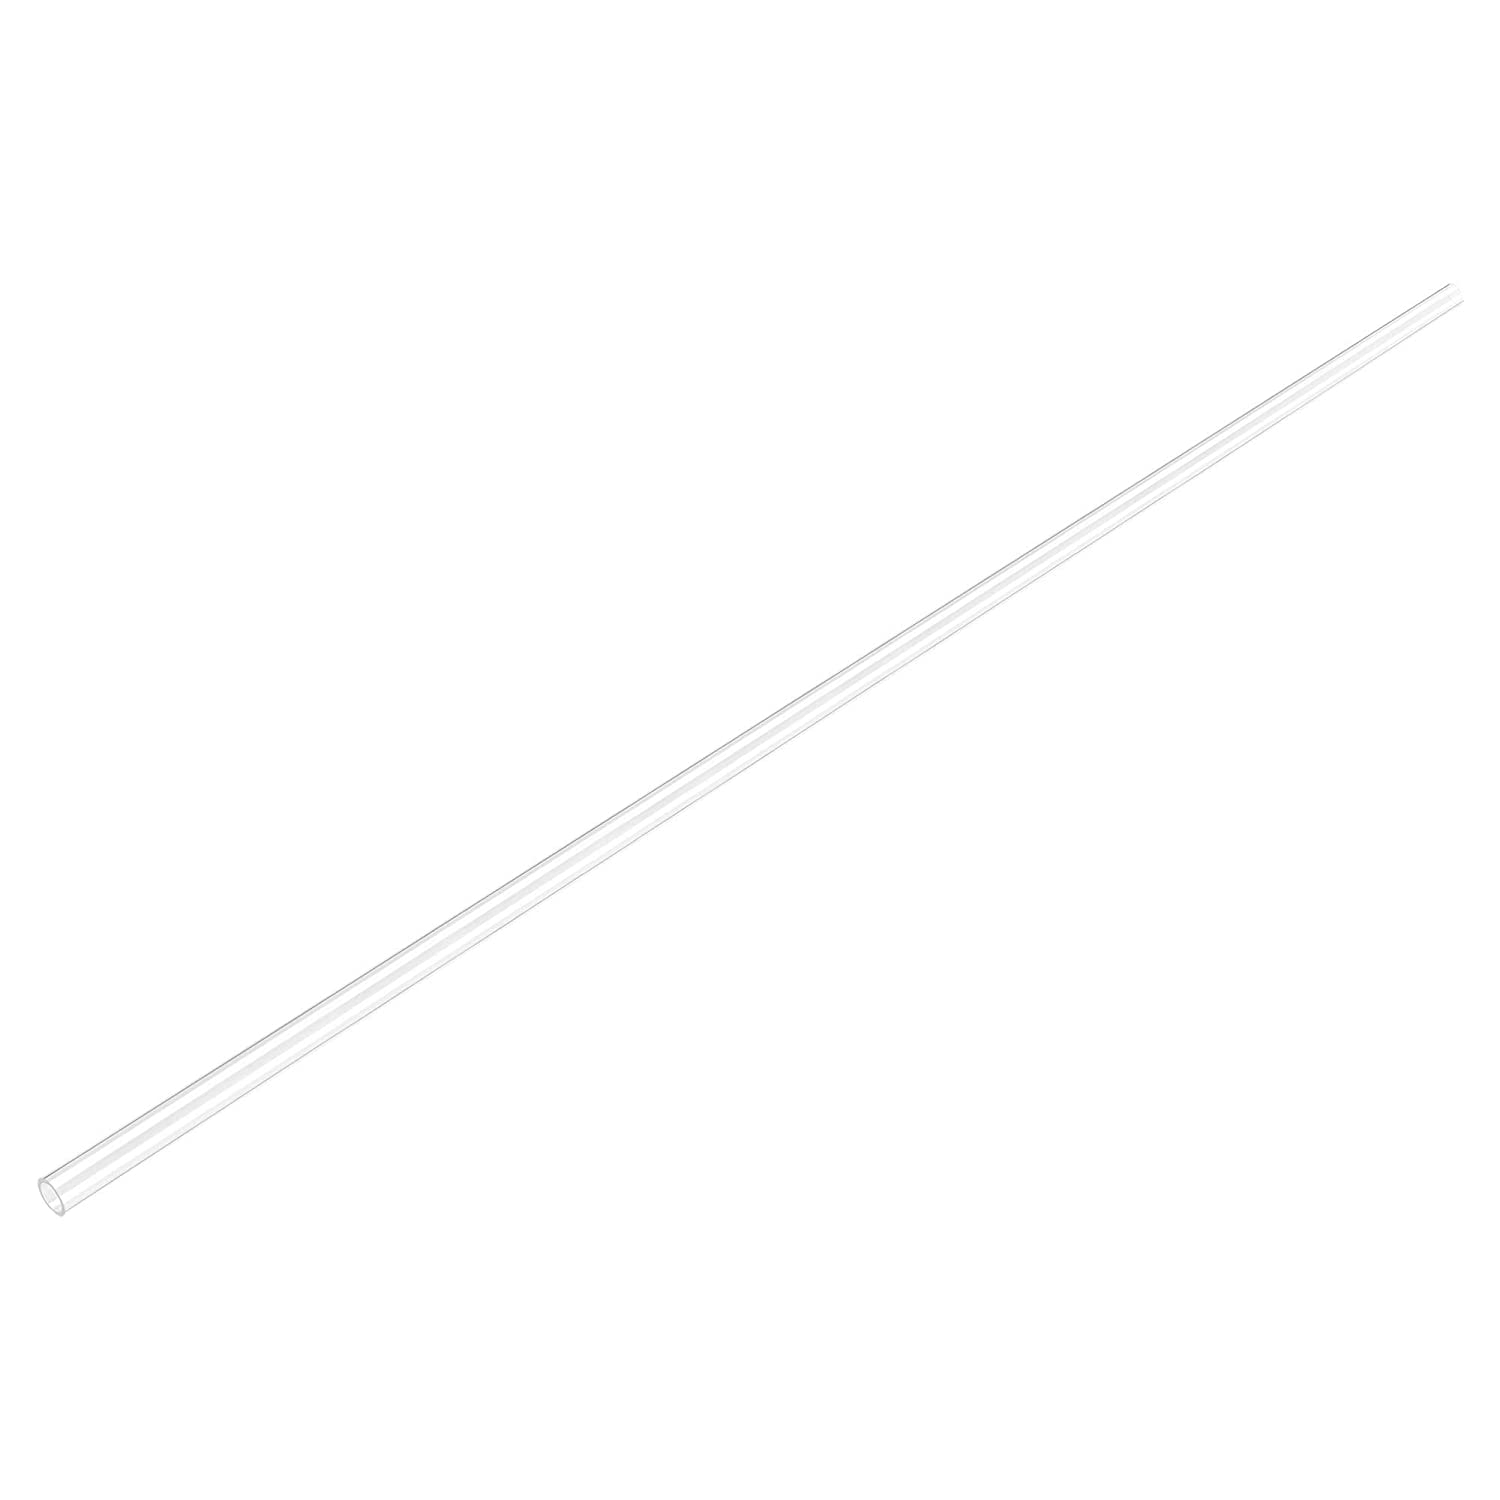 uxcell Polycarbonate Rigid Round Clear Tubing 4mm(0.16 Inch) IDx6mm(0.23 Inch) ODx610mm(2Ft) Length Plastic Tube